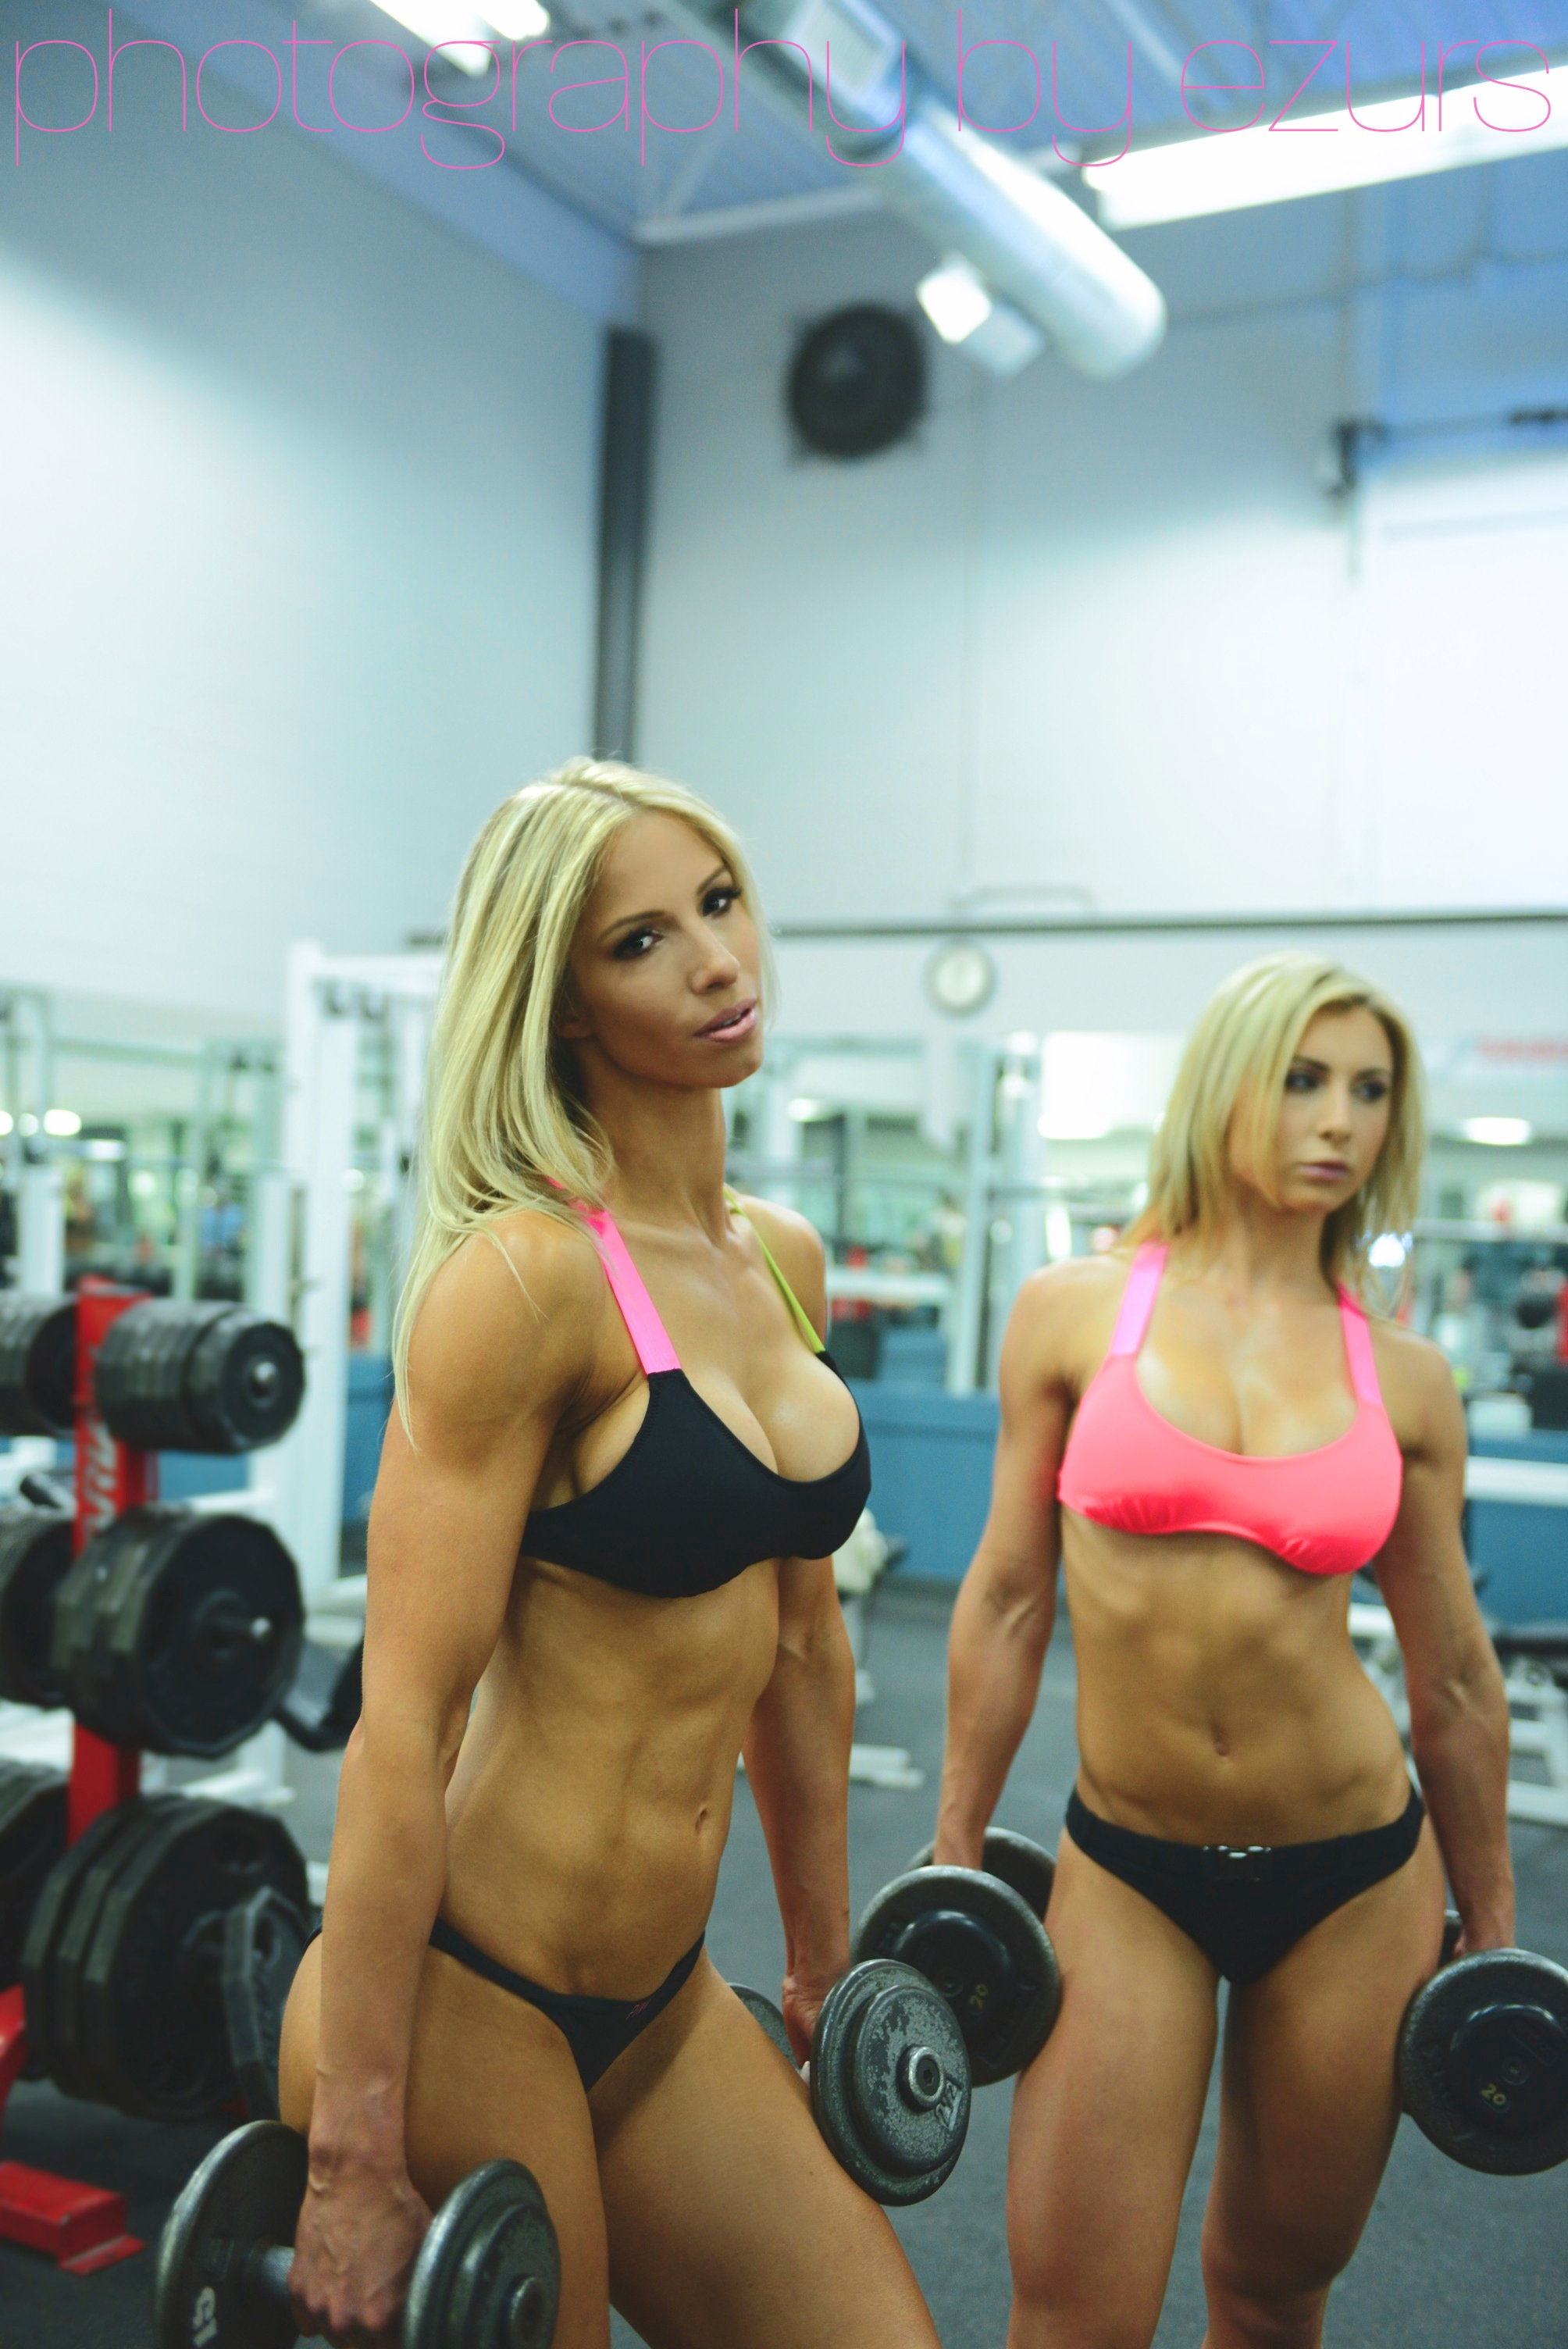 stef and shelagh holding dumbbells.jpg